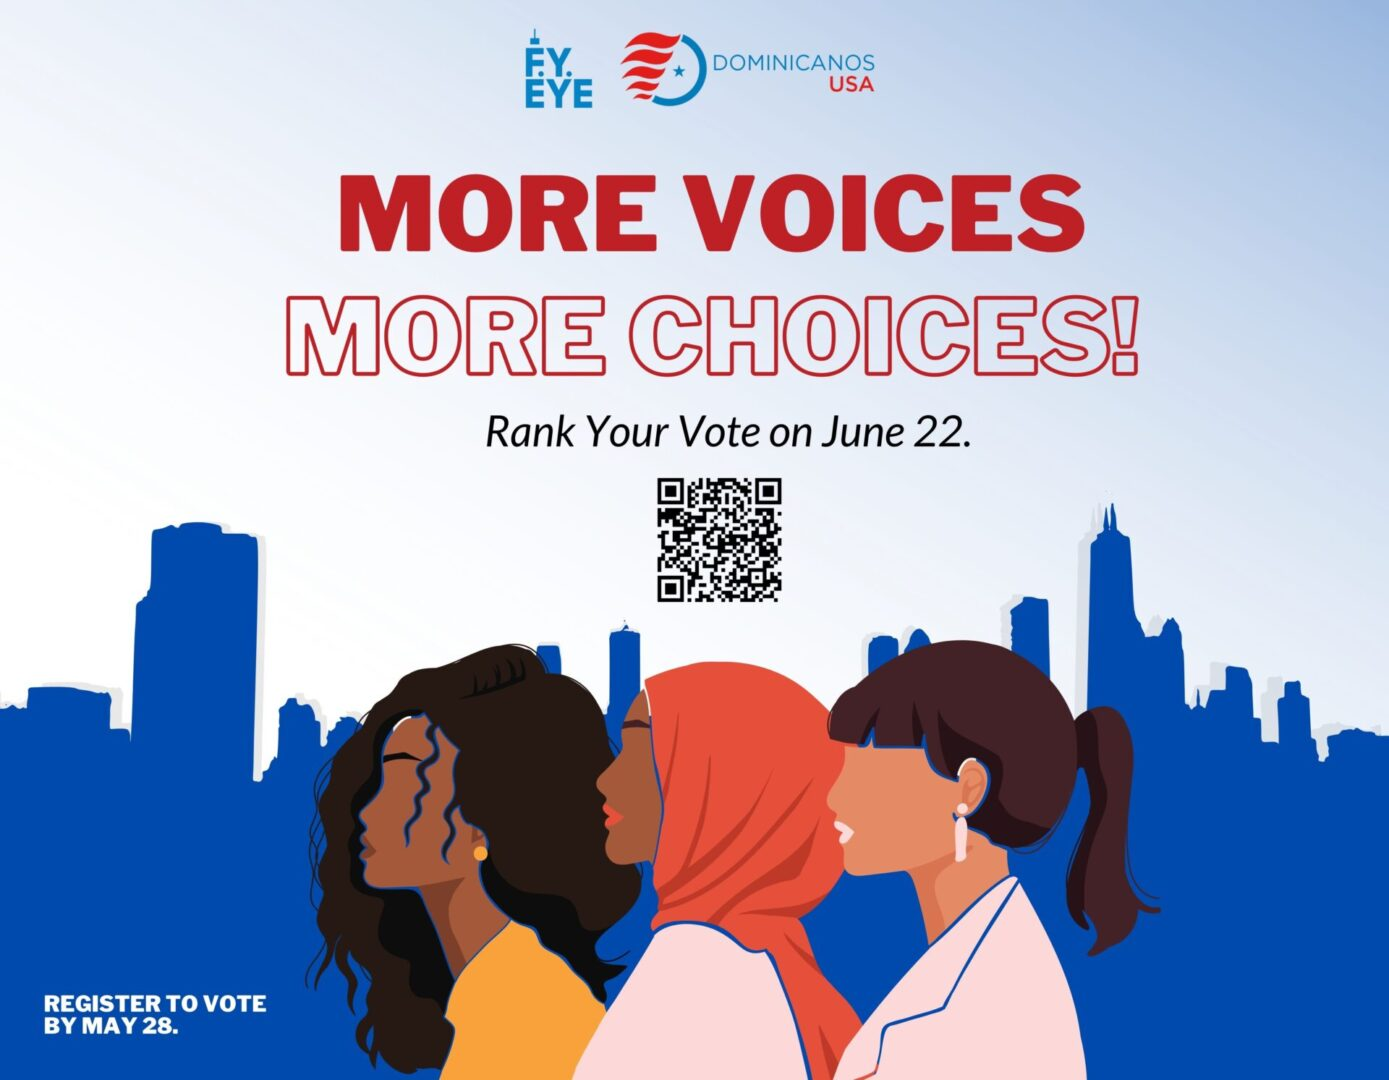 More Choices, More Voices banner